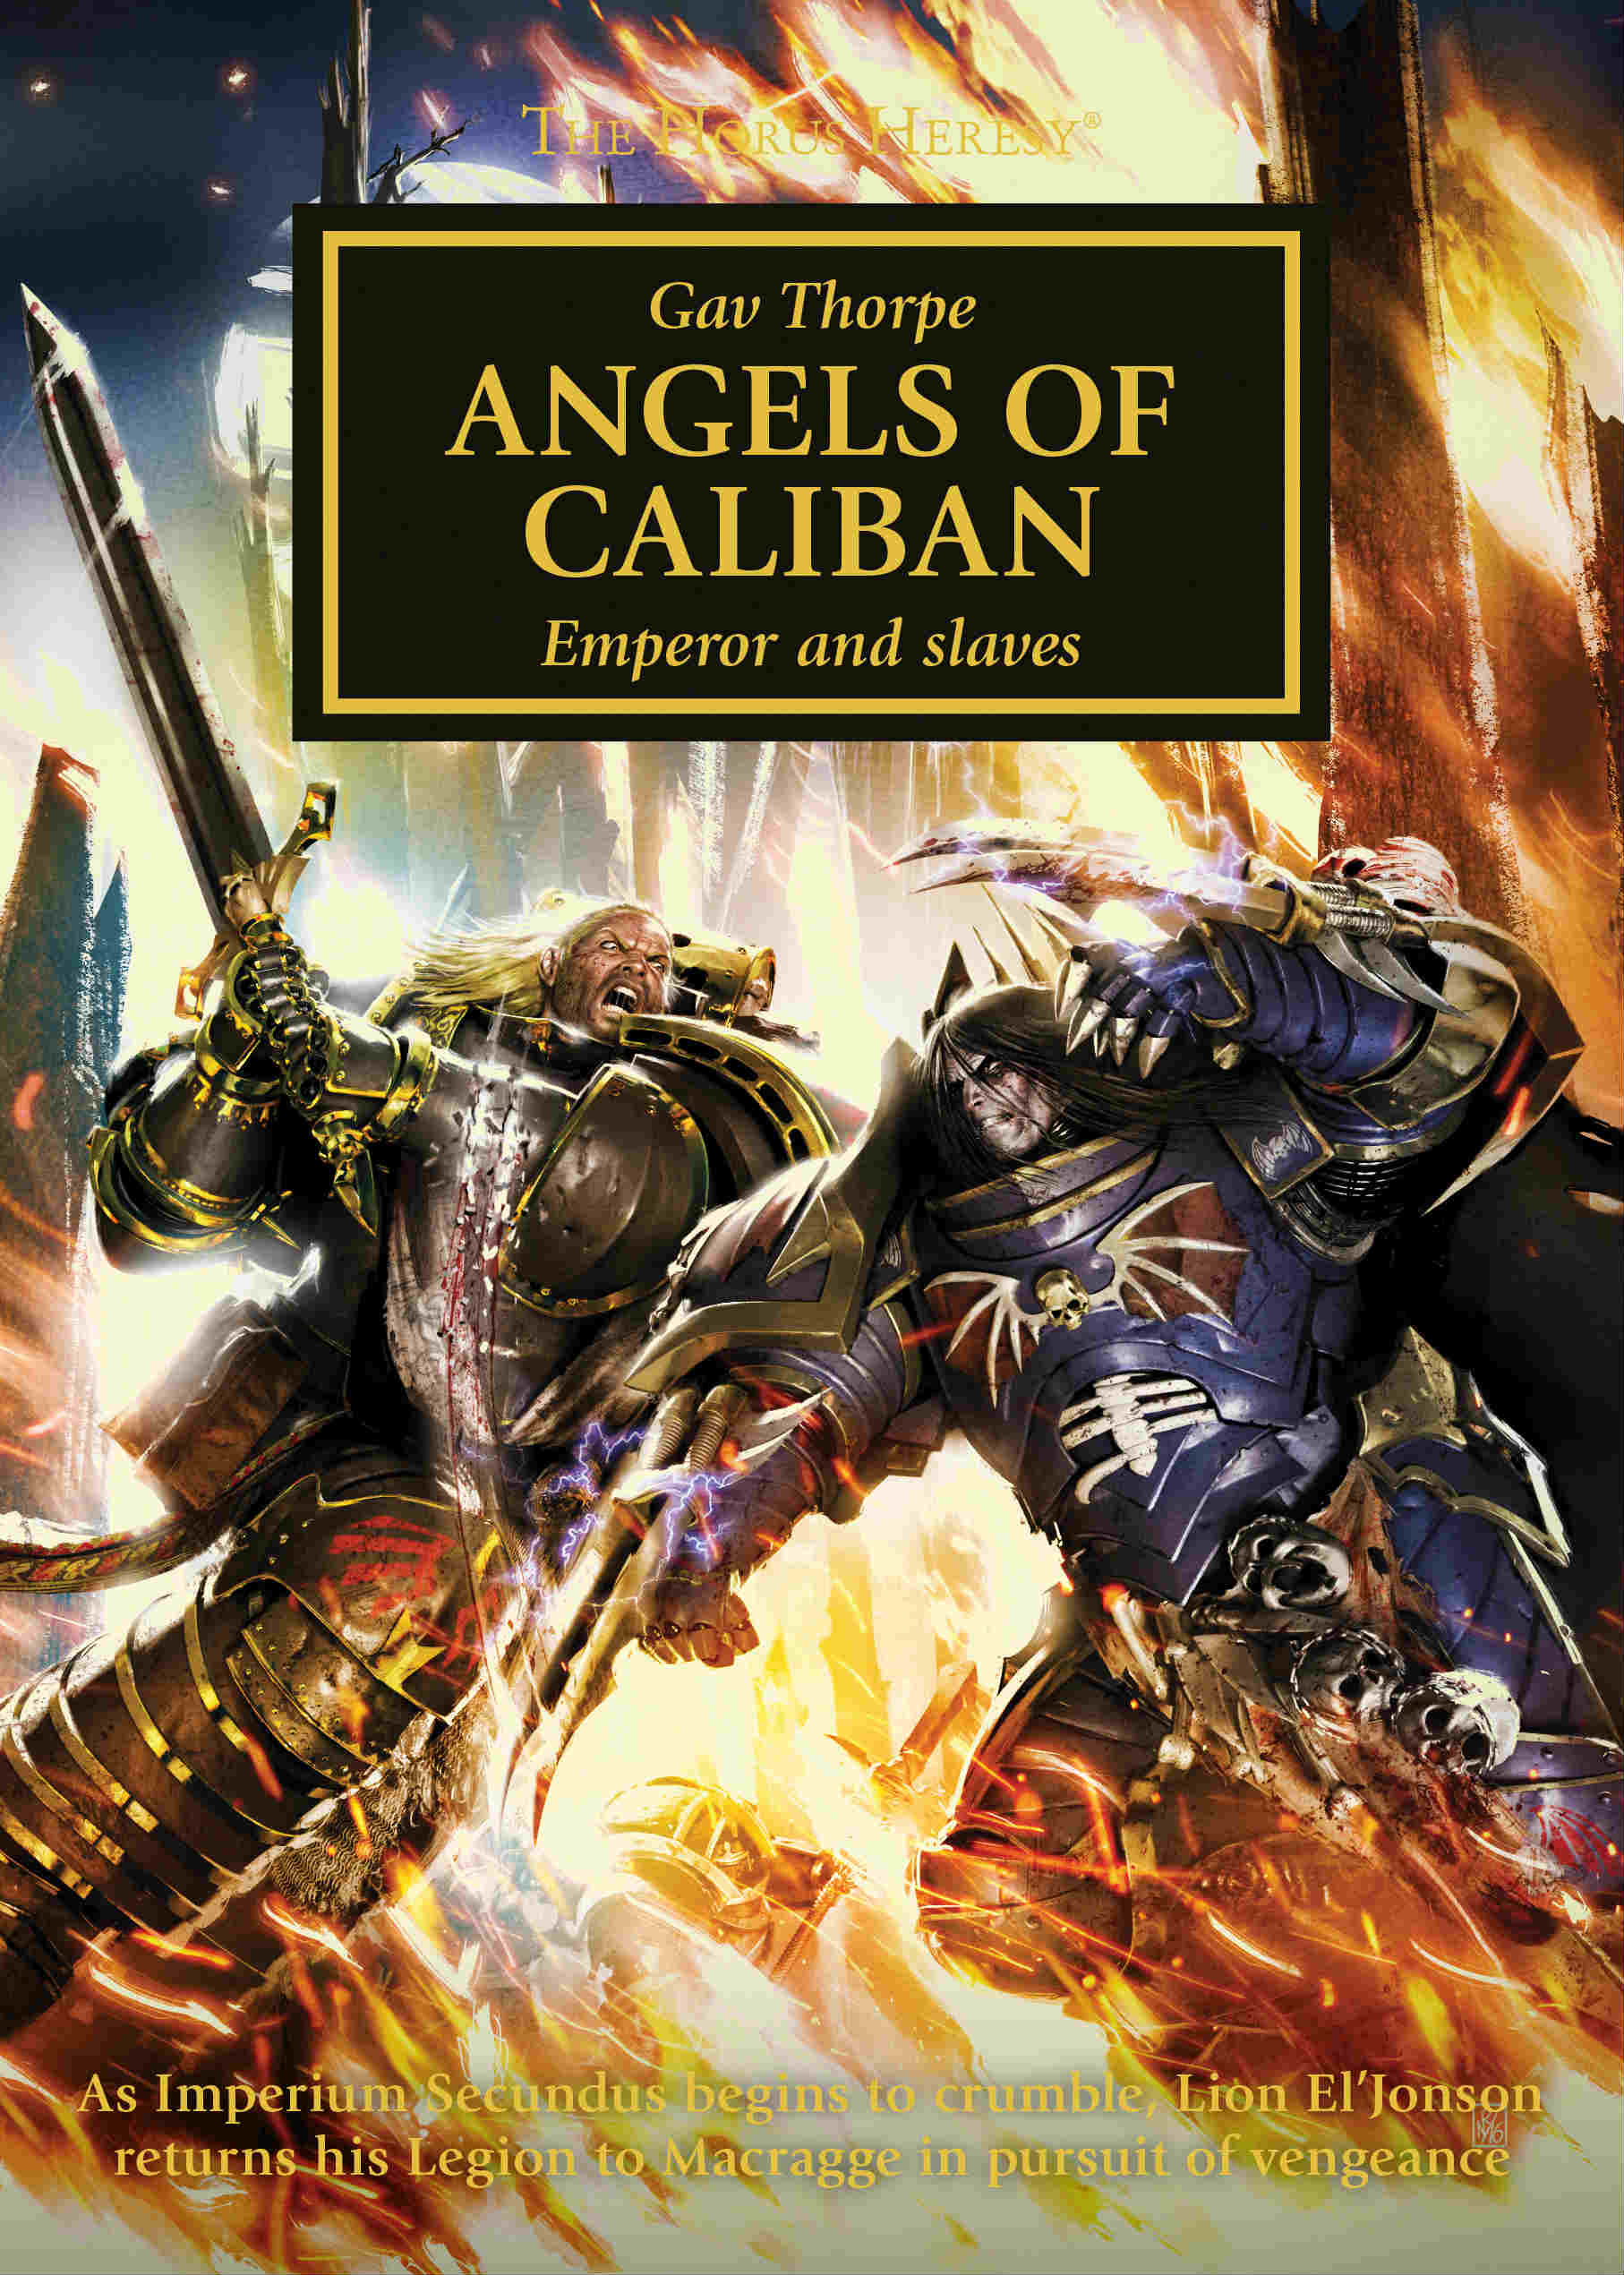 Dark Angel Book Series